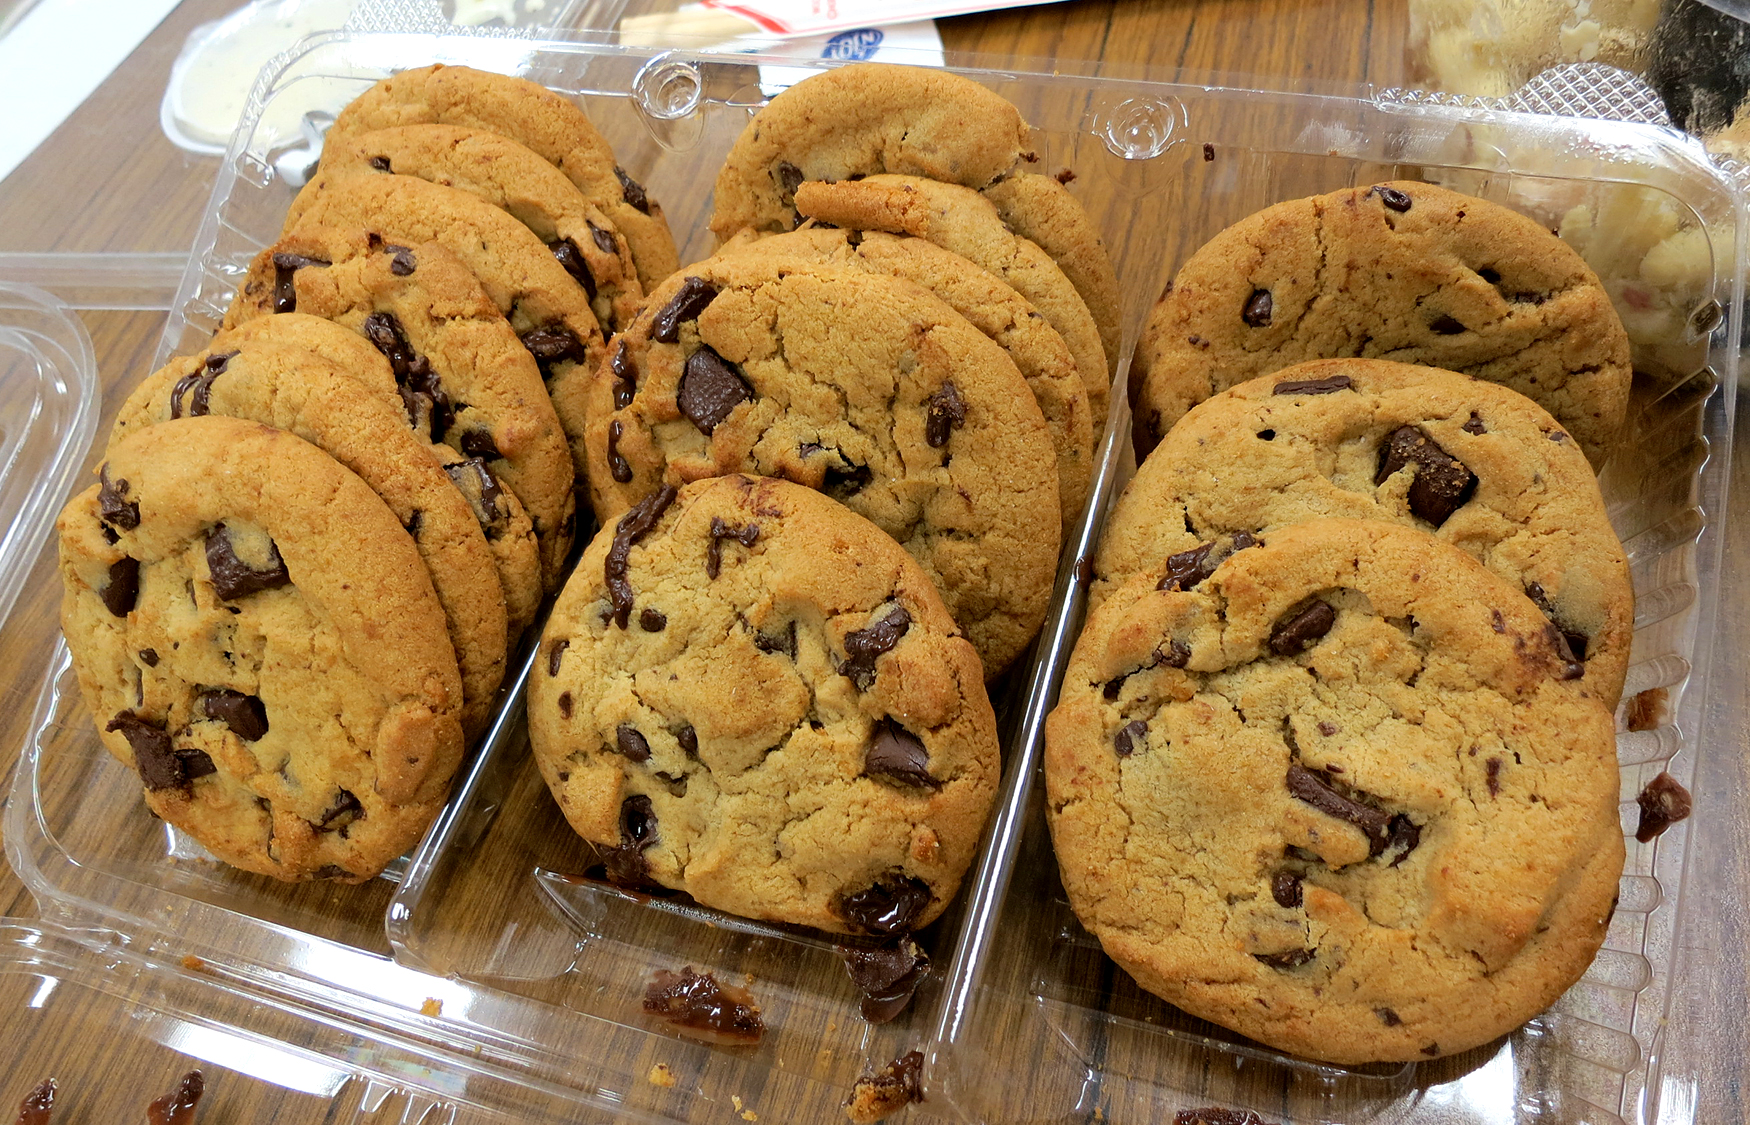 Costco Chocolate Chip Cookies Recipe